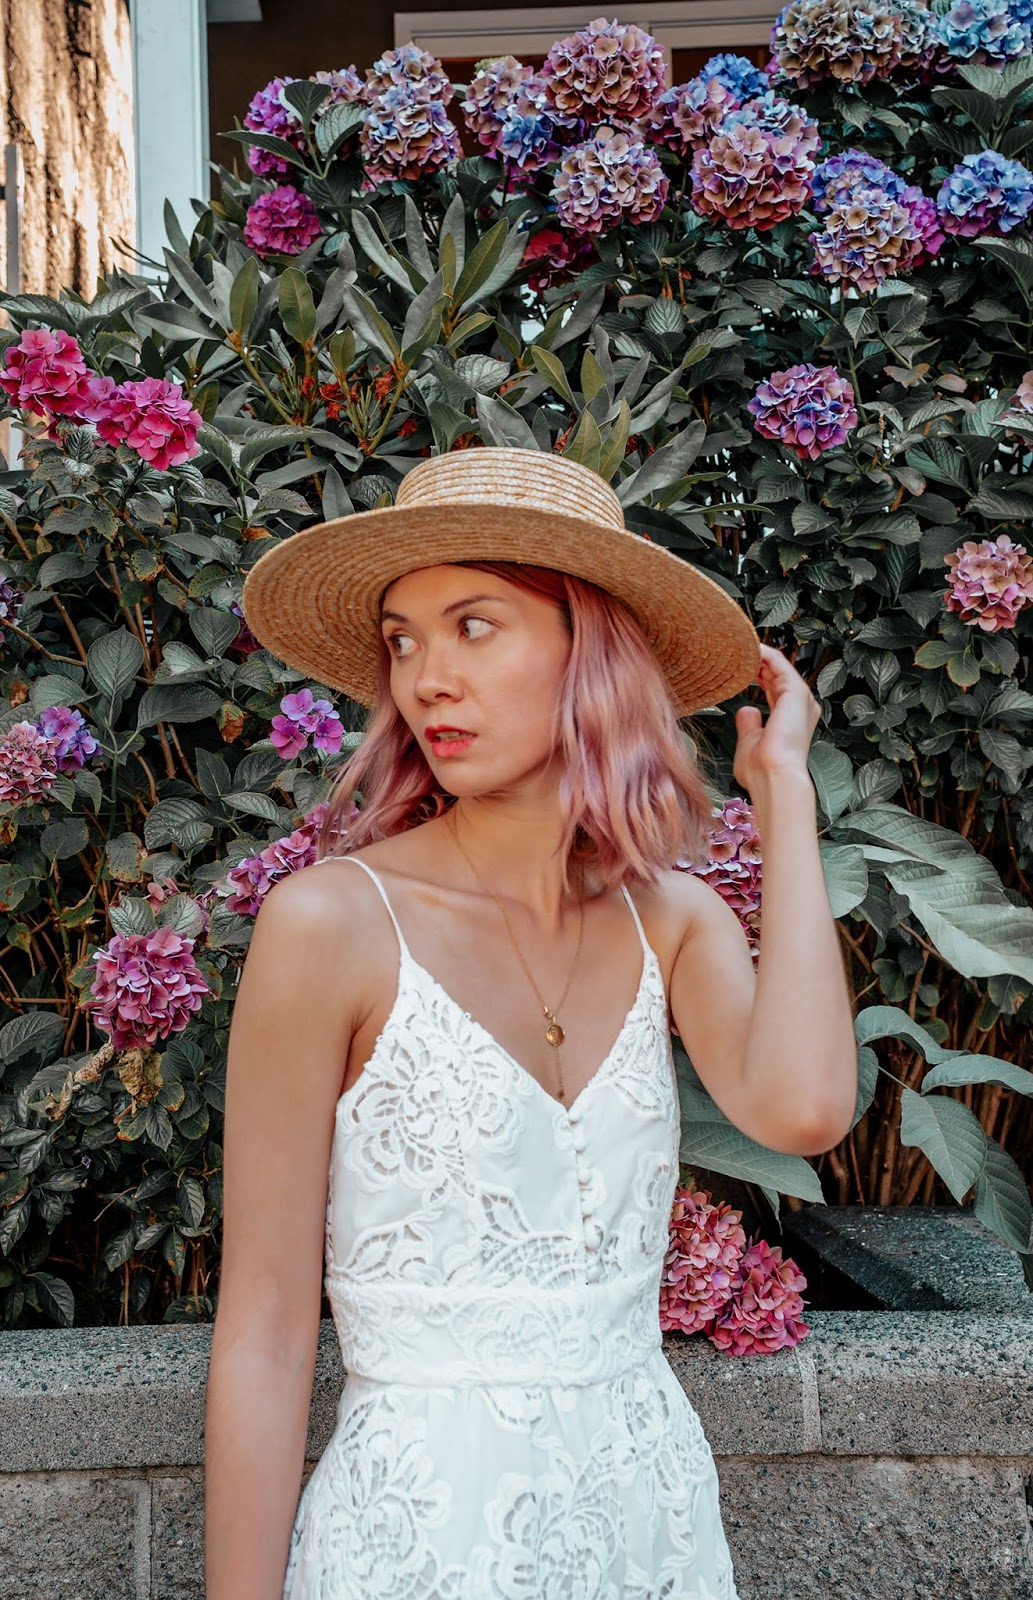 VanDusen Botanical Garden, Vancouver, pink hair, boater hat, rattan purse, wicker purse, style blogger, travel style, travel blogger, things to do in vancouver, summer lookbook, fall lookbook, fall trends, canadian blogger, canadian fashion, nordstrom, zara fall 2018, roju store, urban outfitters, ministry of style